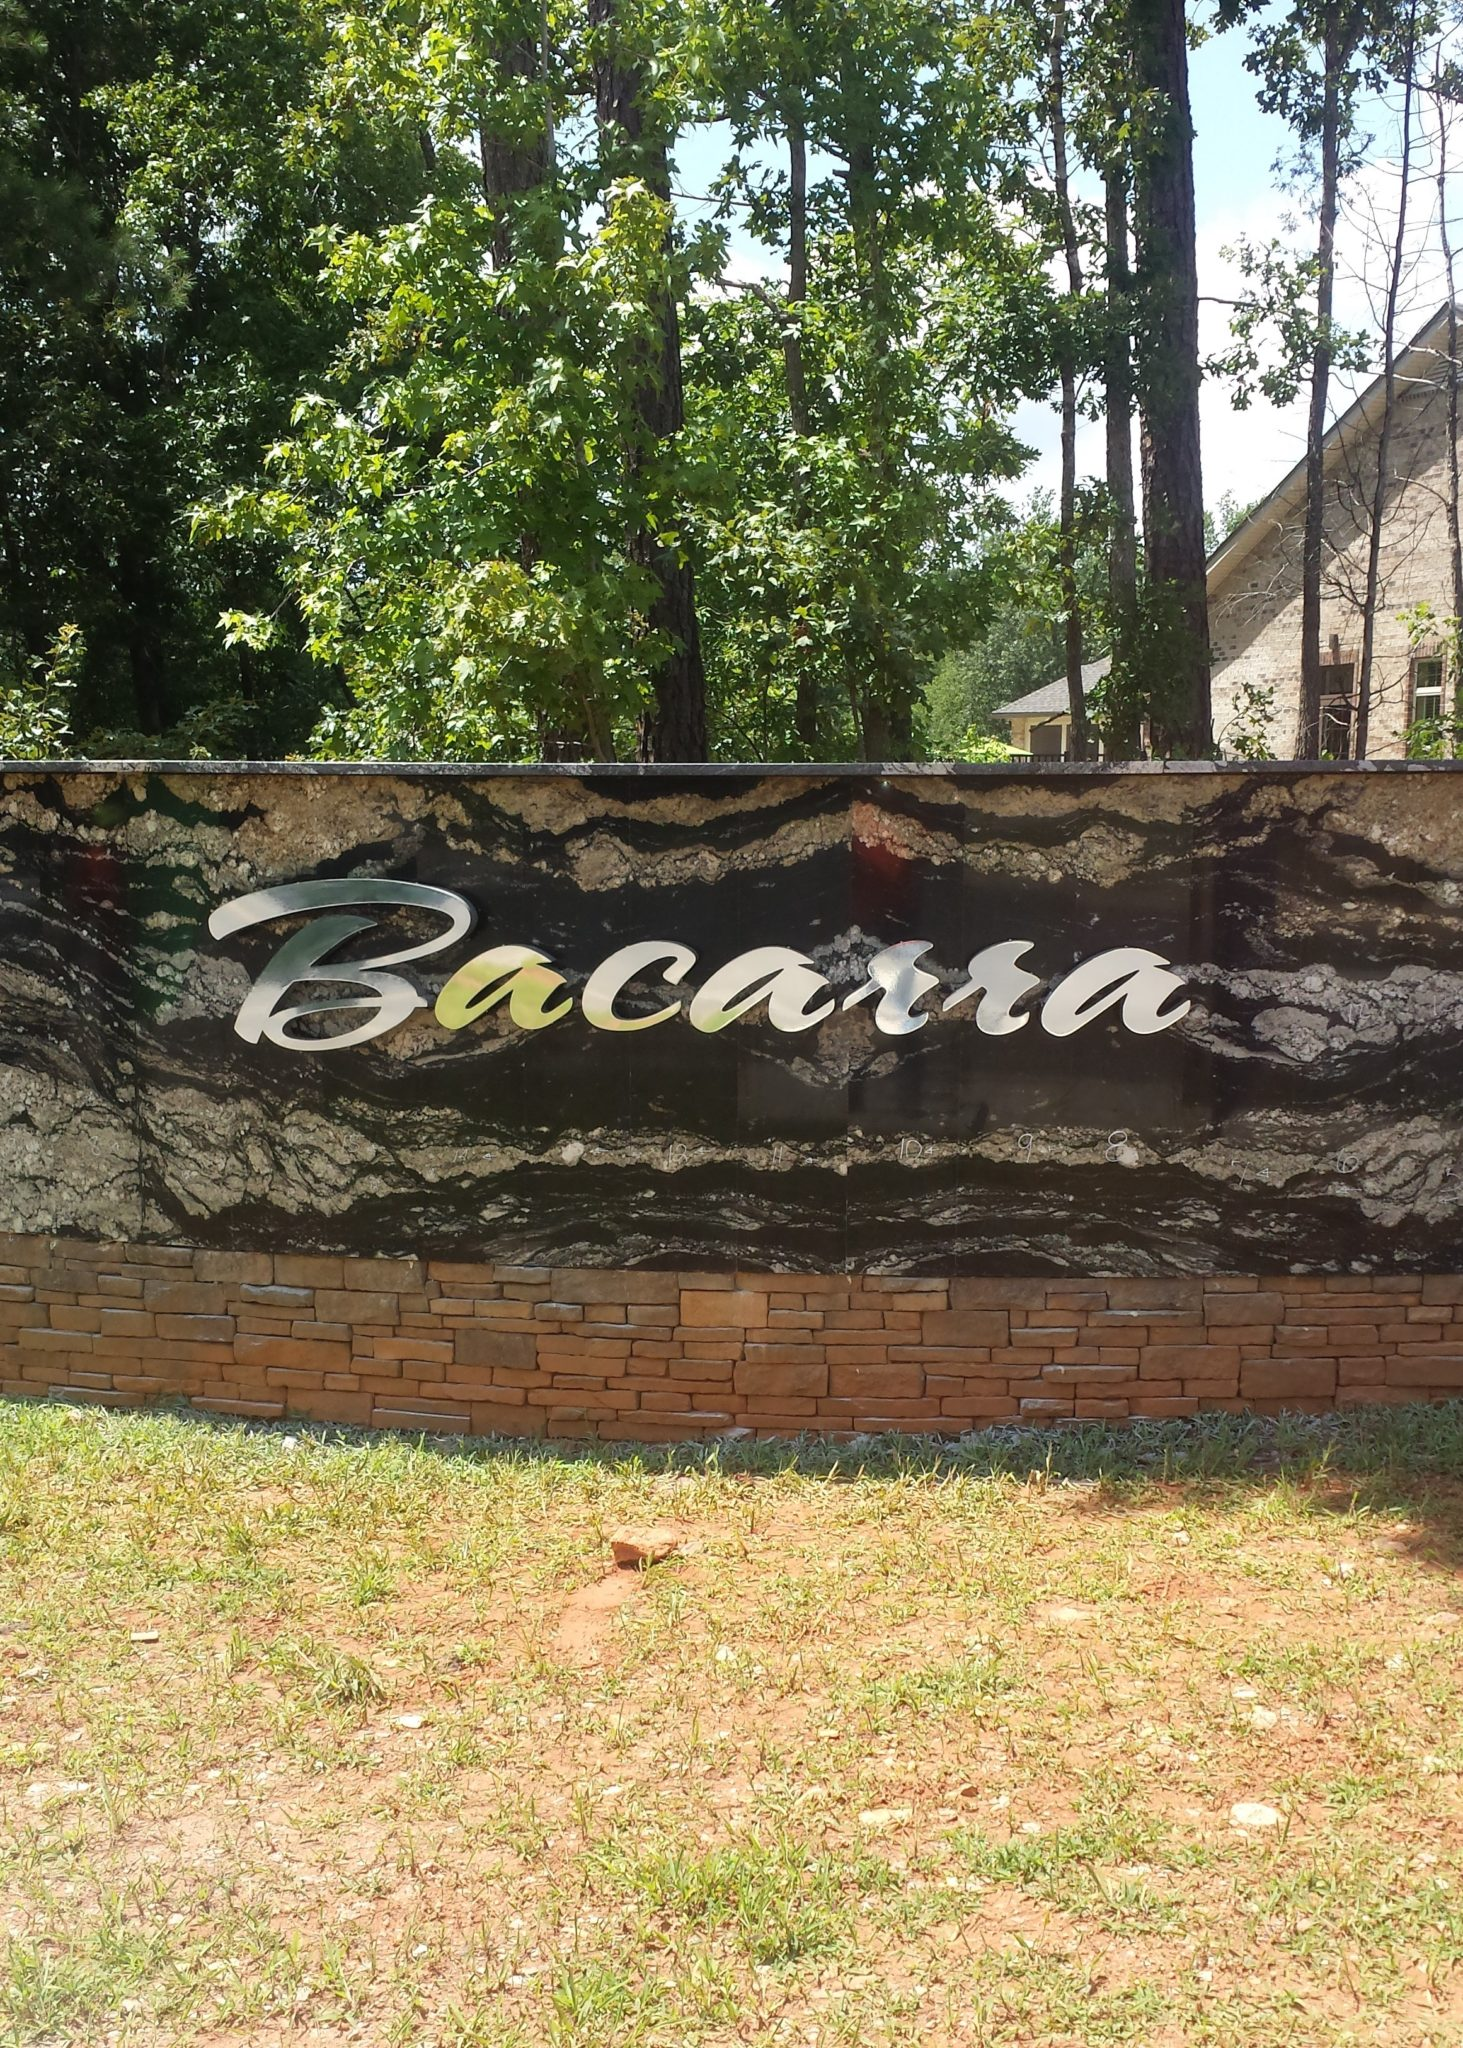 channel letters, channel letter signs, channel letter signs nc, channel letter signs raleigh, signs nc, custom signs, exterior signs, business signs, logo signs, led signs, stainless steel faces, aluminum signs, outdoor signs, apartment complex signs, wall signs, exterior signs,